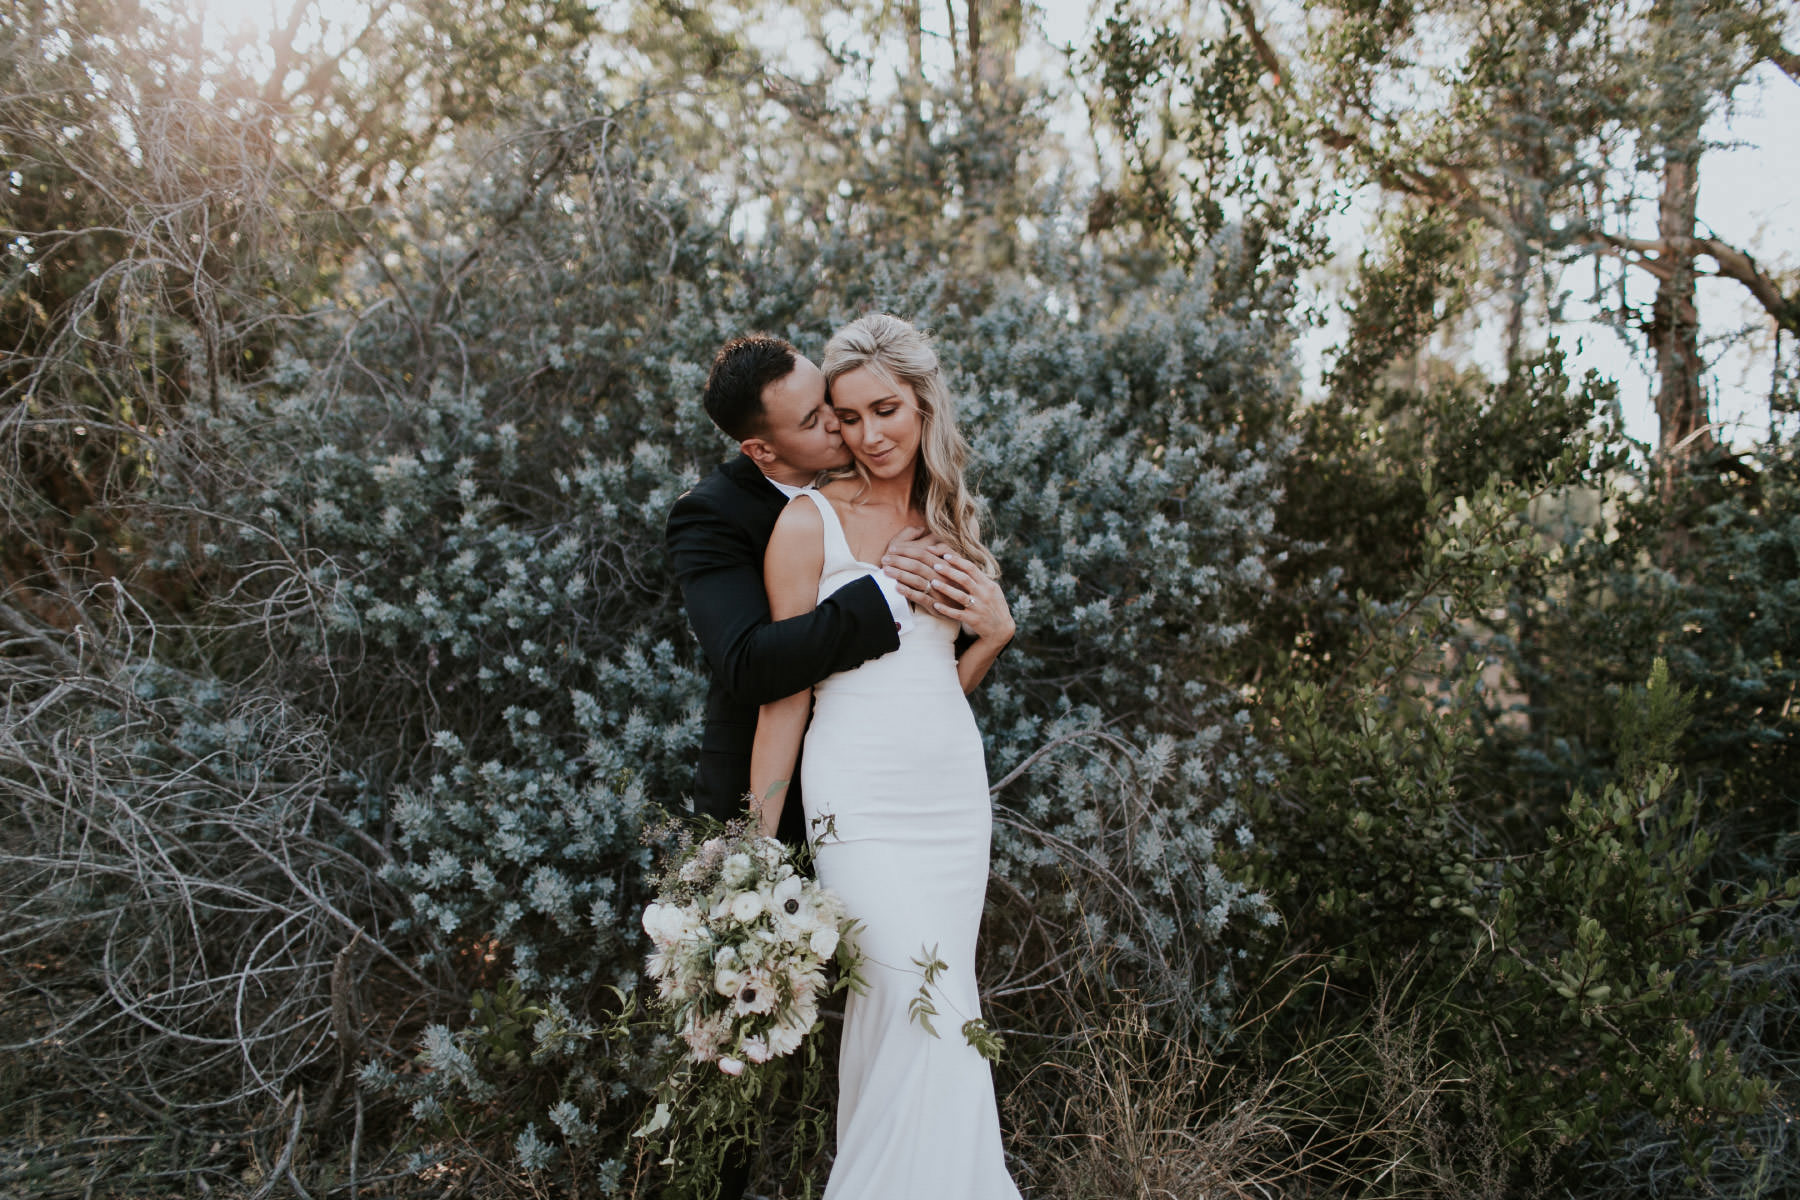 Bride and groom embracing outdoors in San Diego